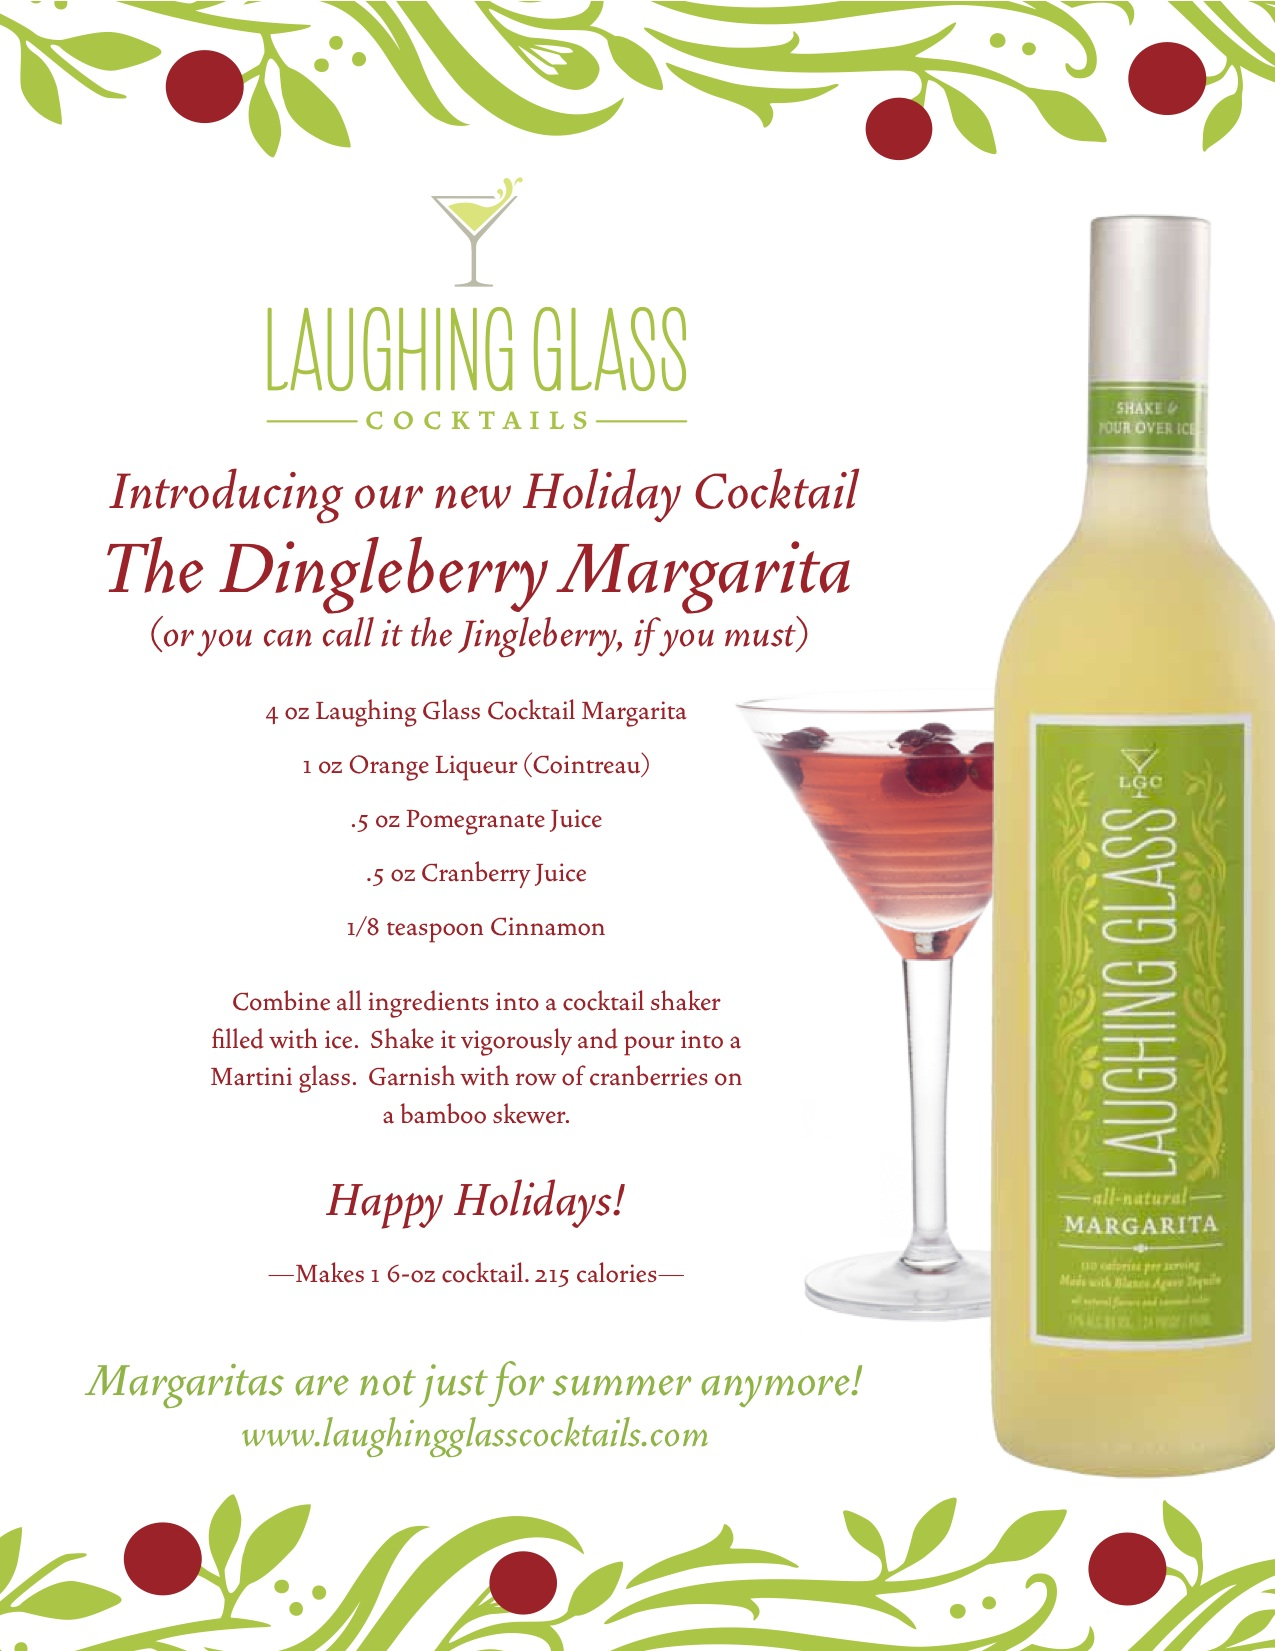 LaughingGlass_HolidayDrink_Final_LoRes_2013